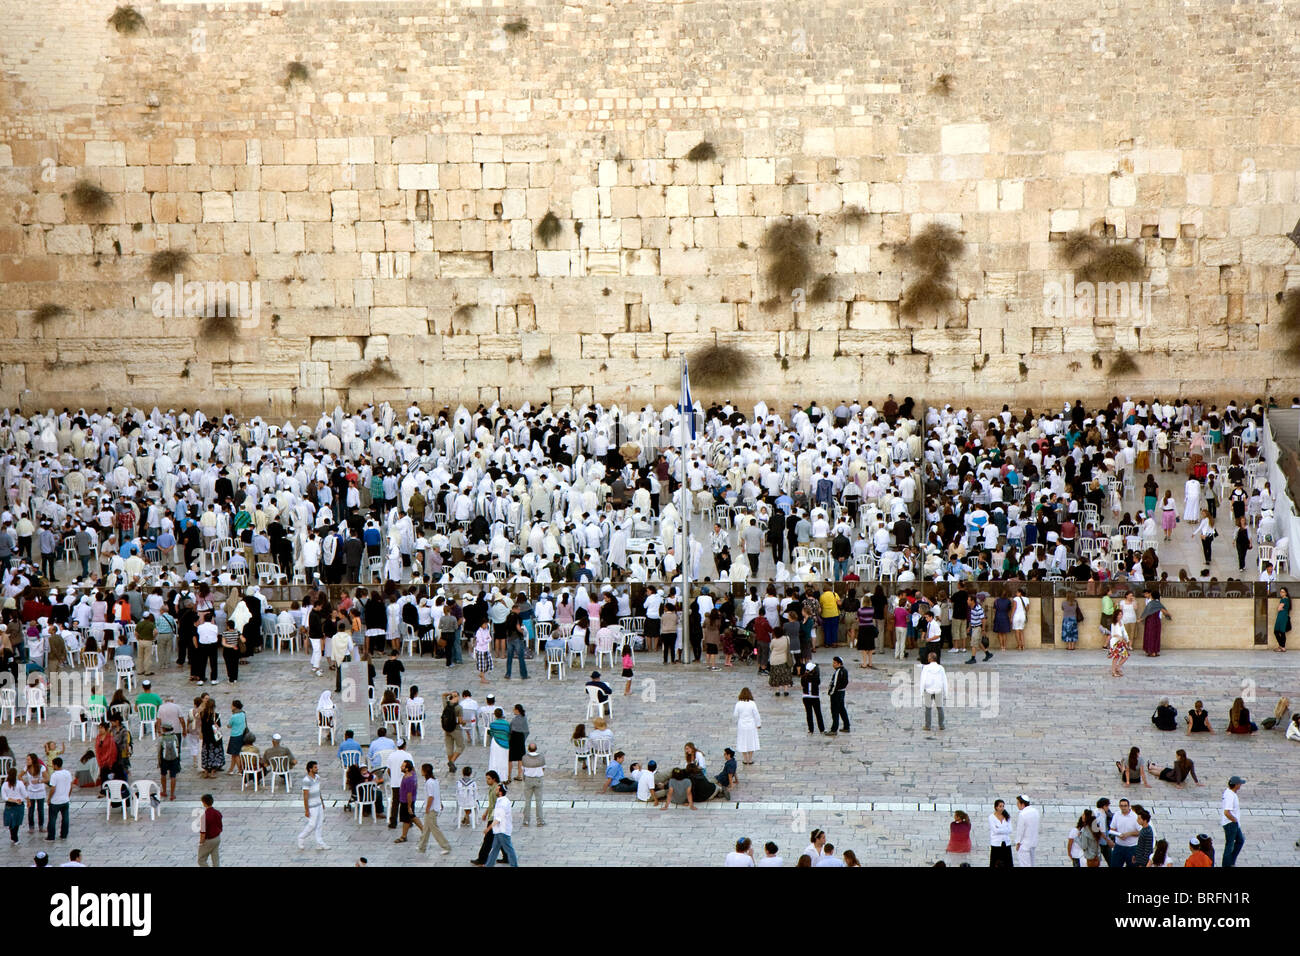 Jewish religious man with traditional clothes pray at the Wailing Wall in the old city of Jerusalem at Yom Kippur - Stock Image